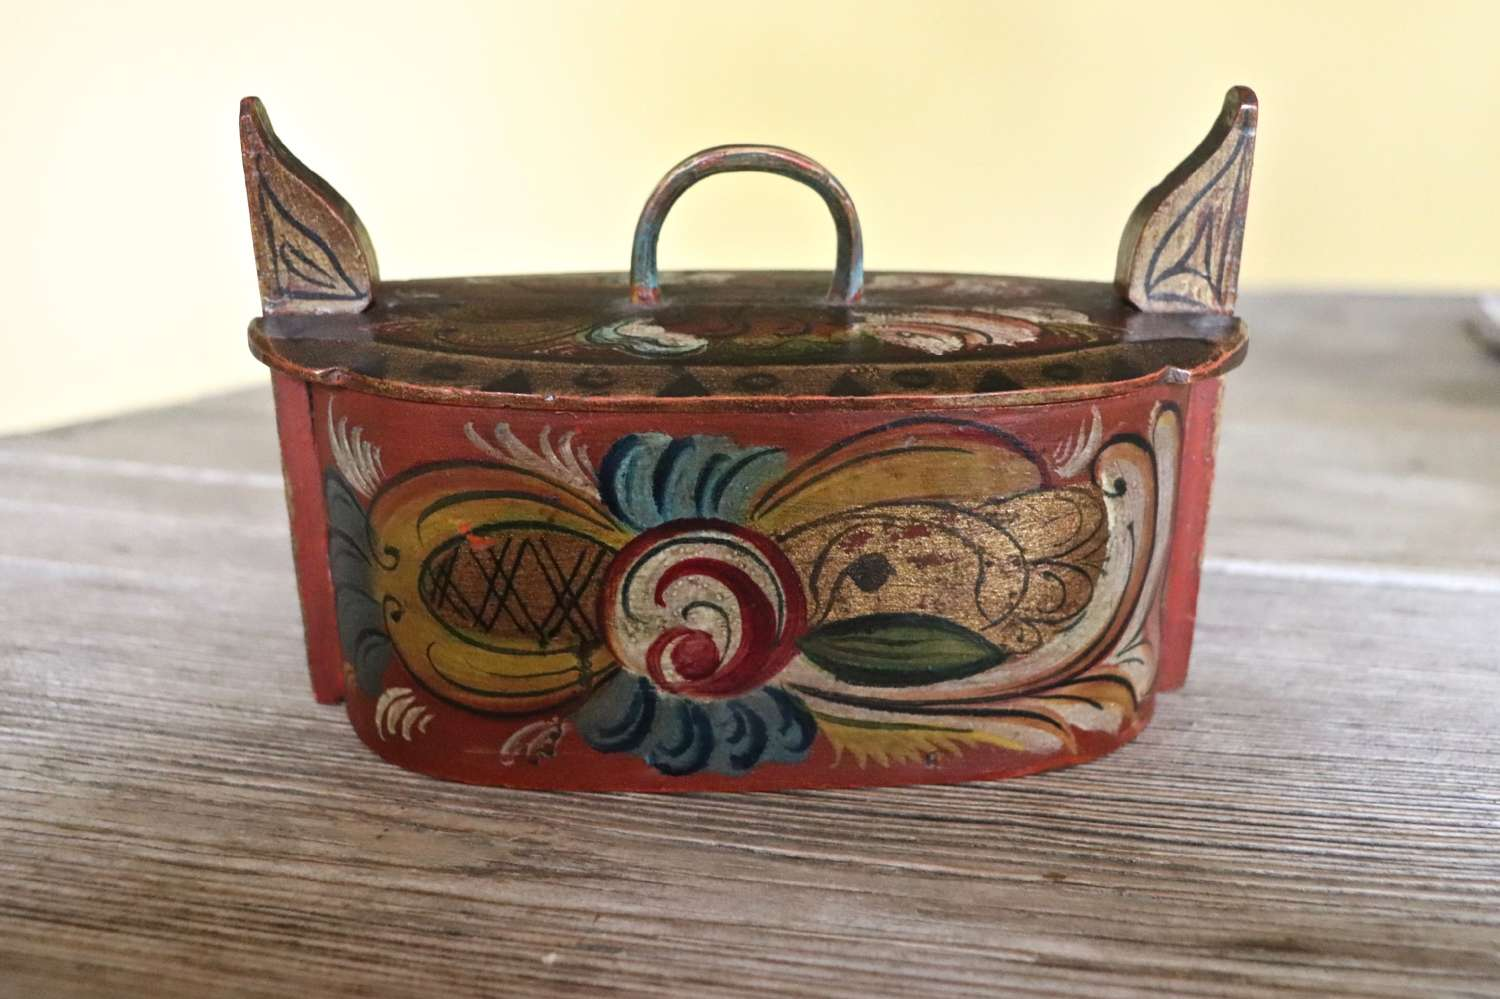 Early 20th century painted Norwegian tine box